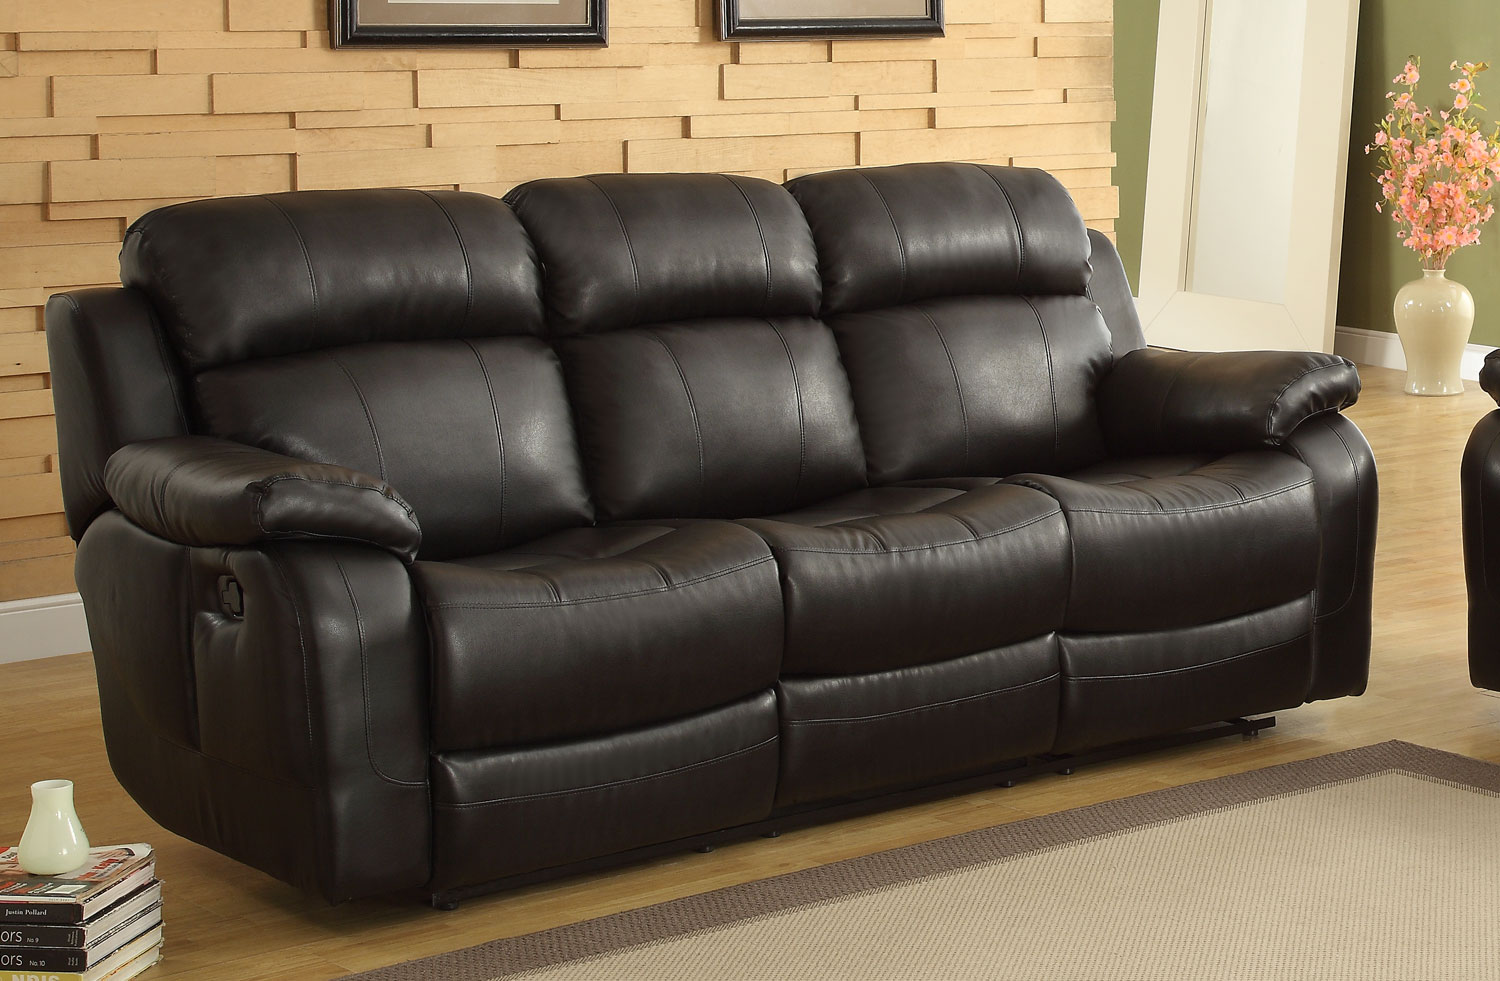 Homelegance Marille Reclining Sofa Set Black Bonded Leather Match U9724blk 3 At